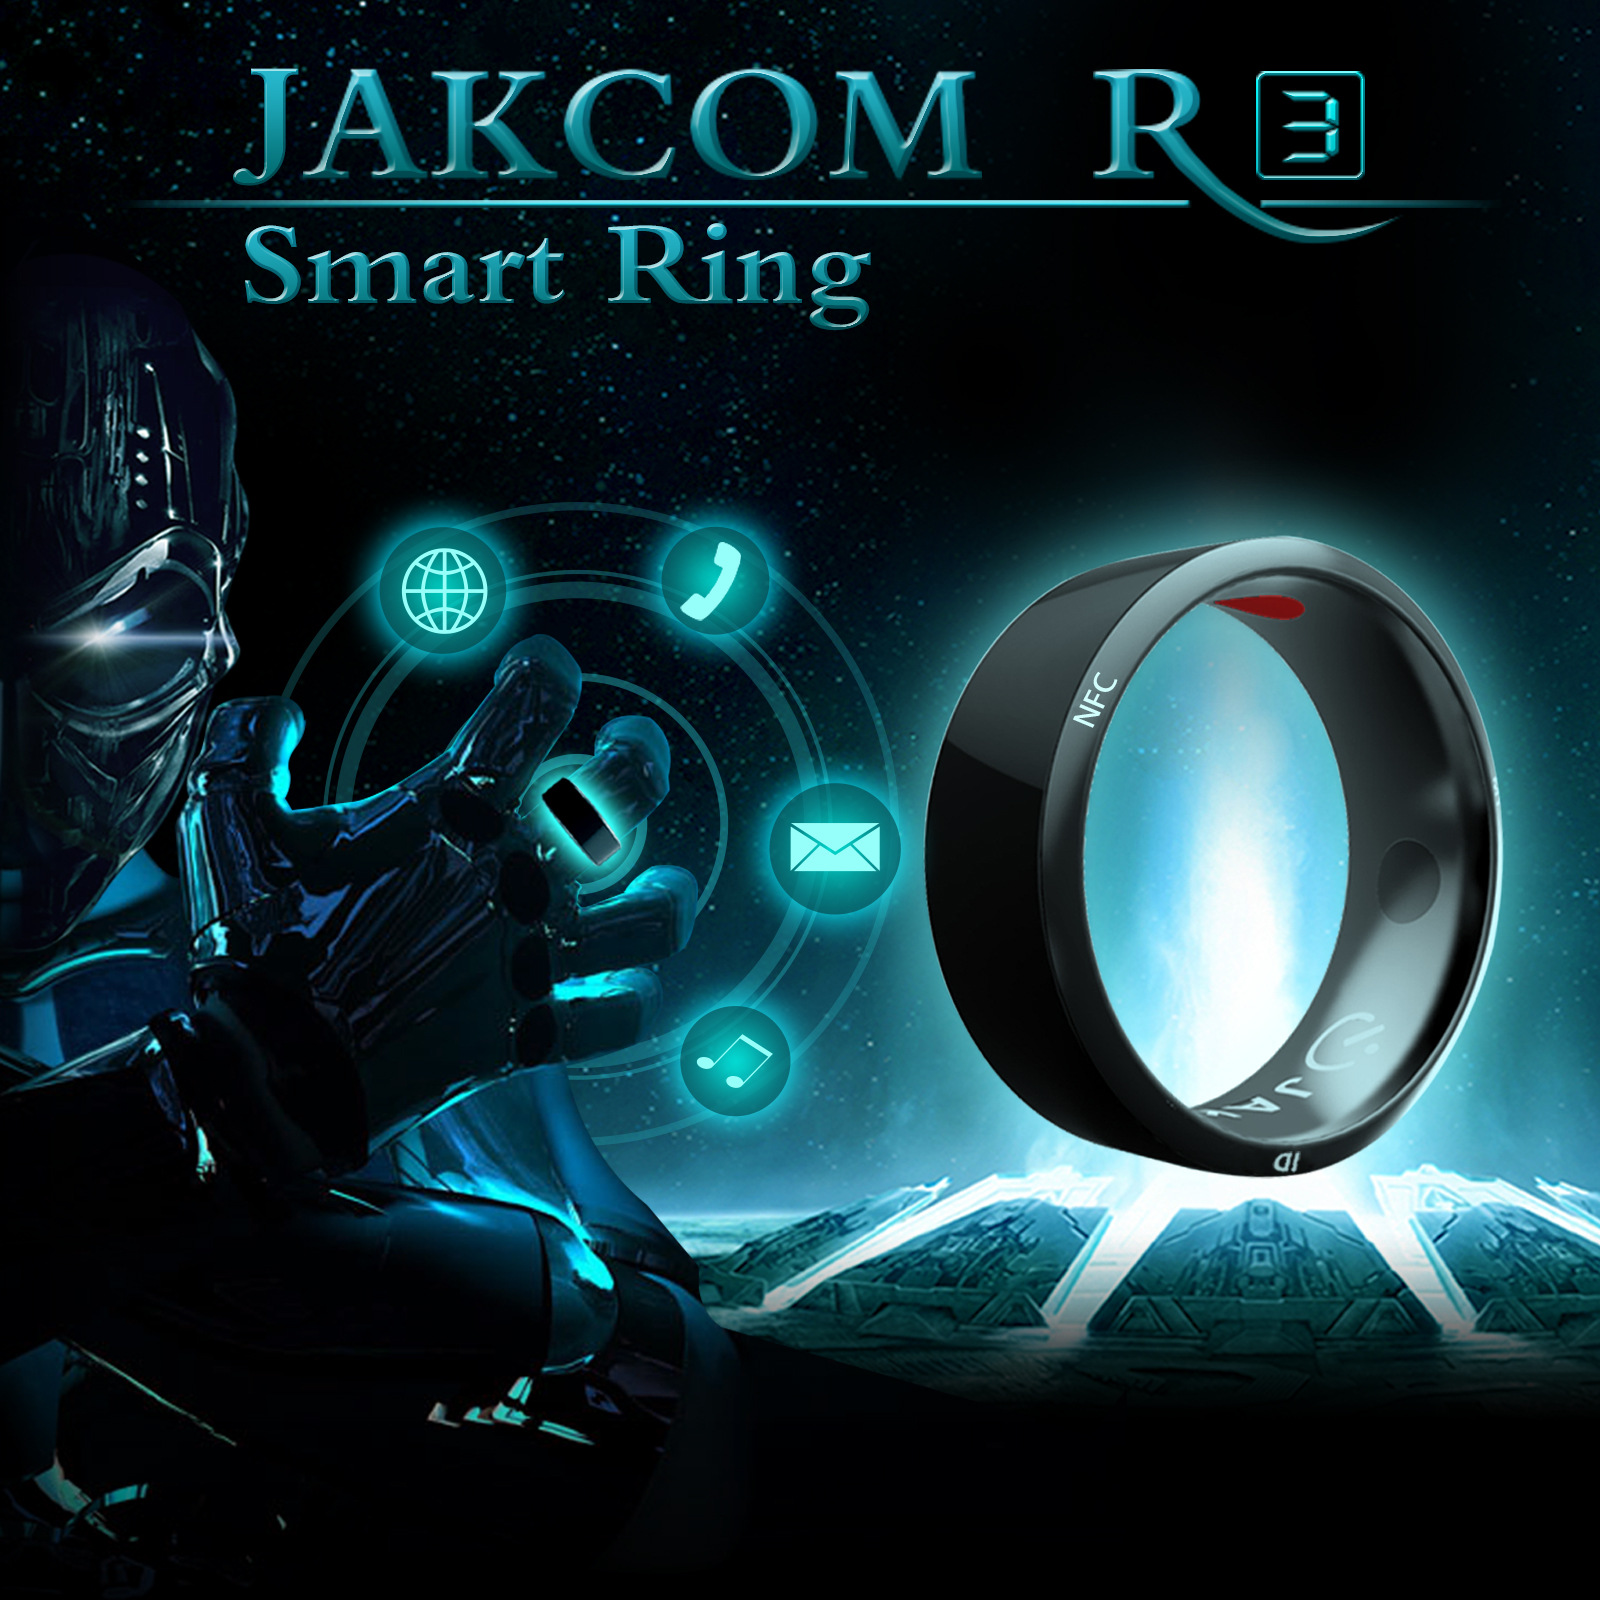 Werable Devices Jakcom R3 Smart Ring Electronic CNC Metal Mini Magic RFID NFC Rewritable Ring IC/ID Access Control Card